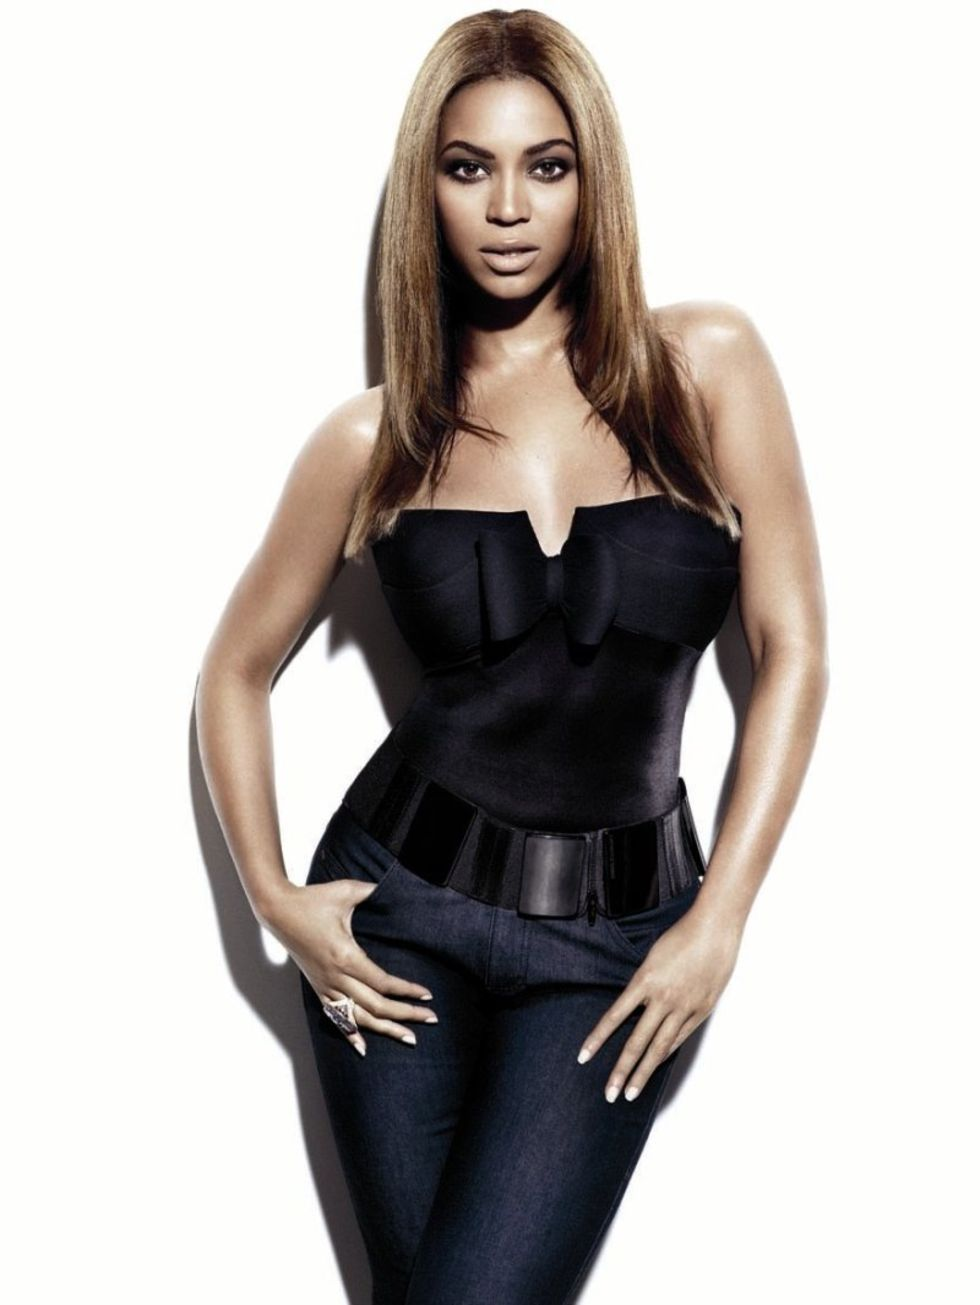 BEYONCE SHE IS DIVA THAT GRAPE JUICE Beyonce & Salma Hayek Front Gucci Empowerment Campaign